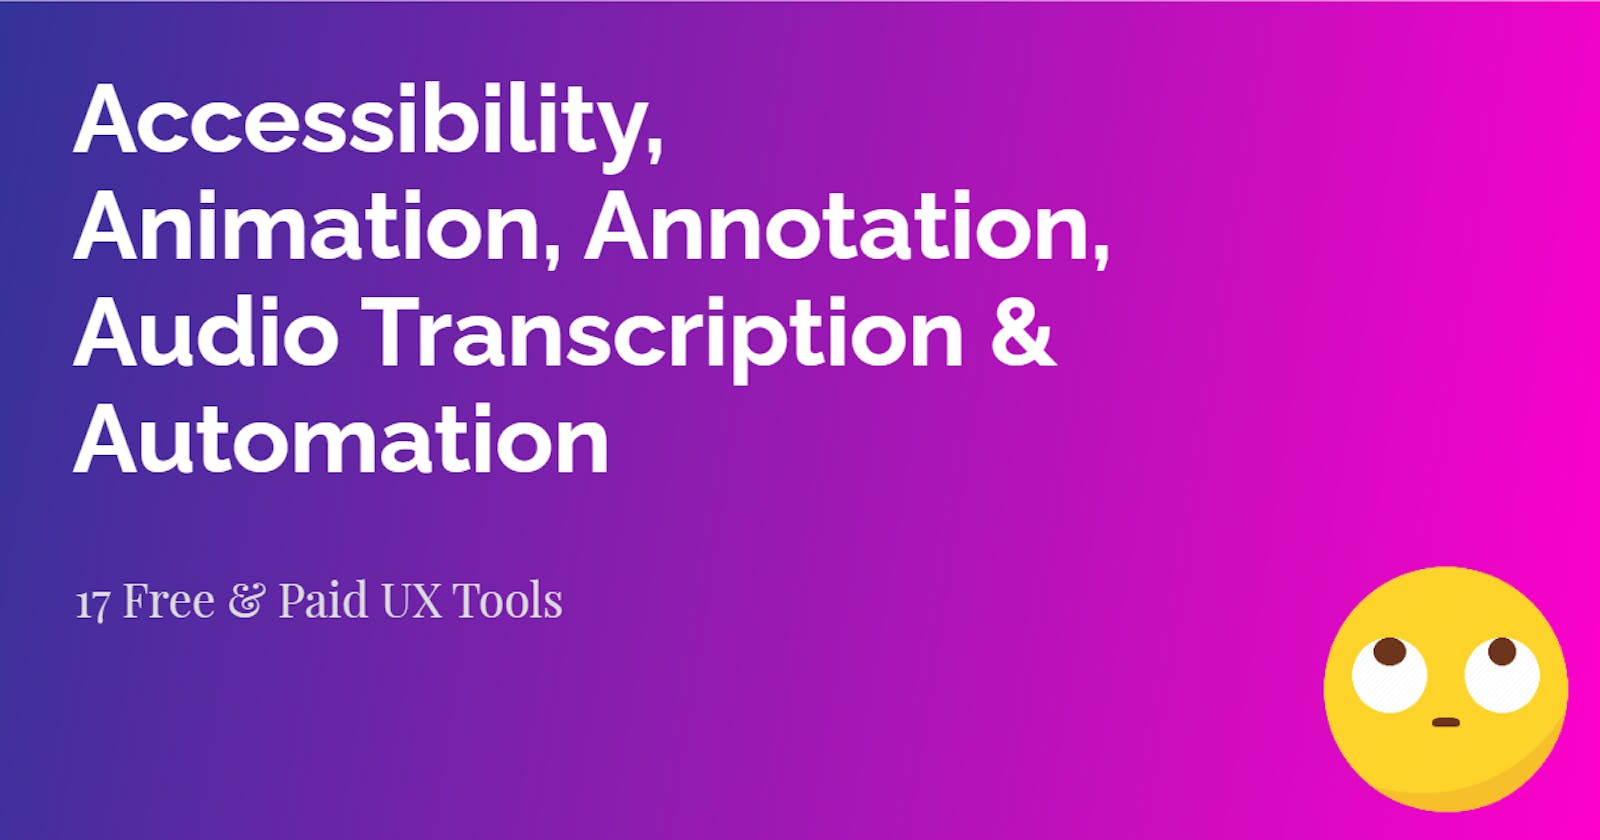 Accessibility, Animation, Annotation, Audio Transcription & Automation Tools   UX